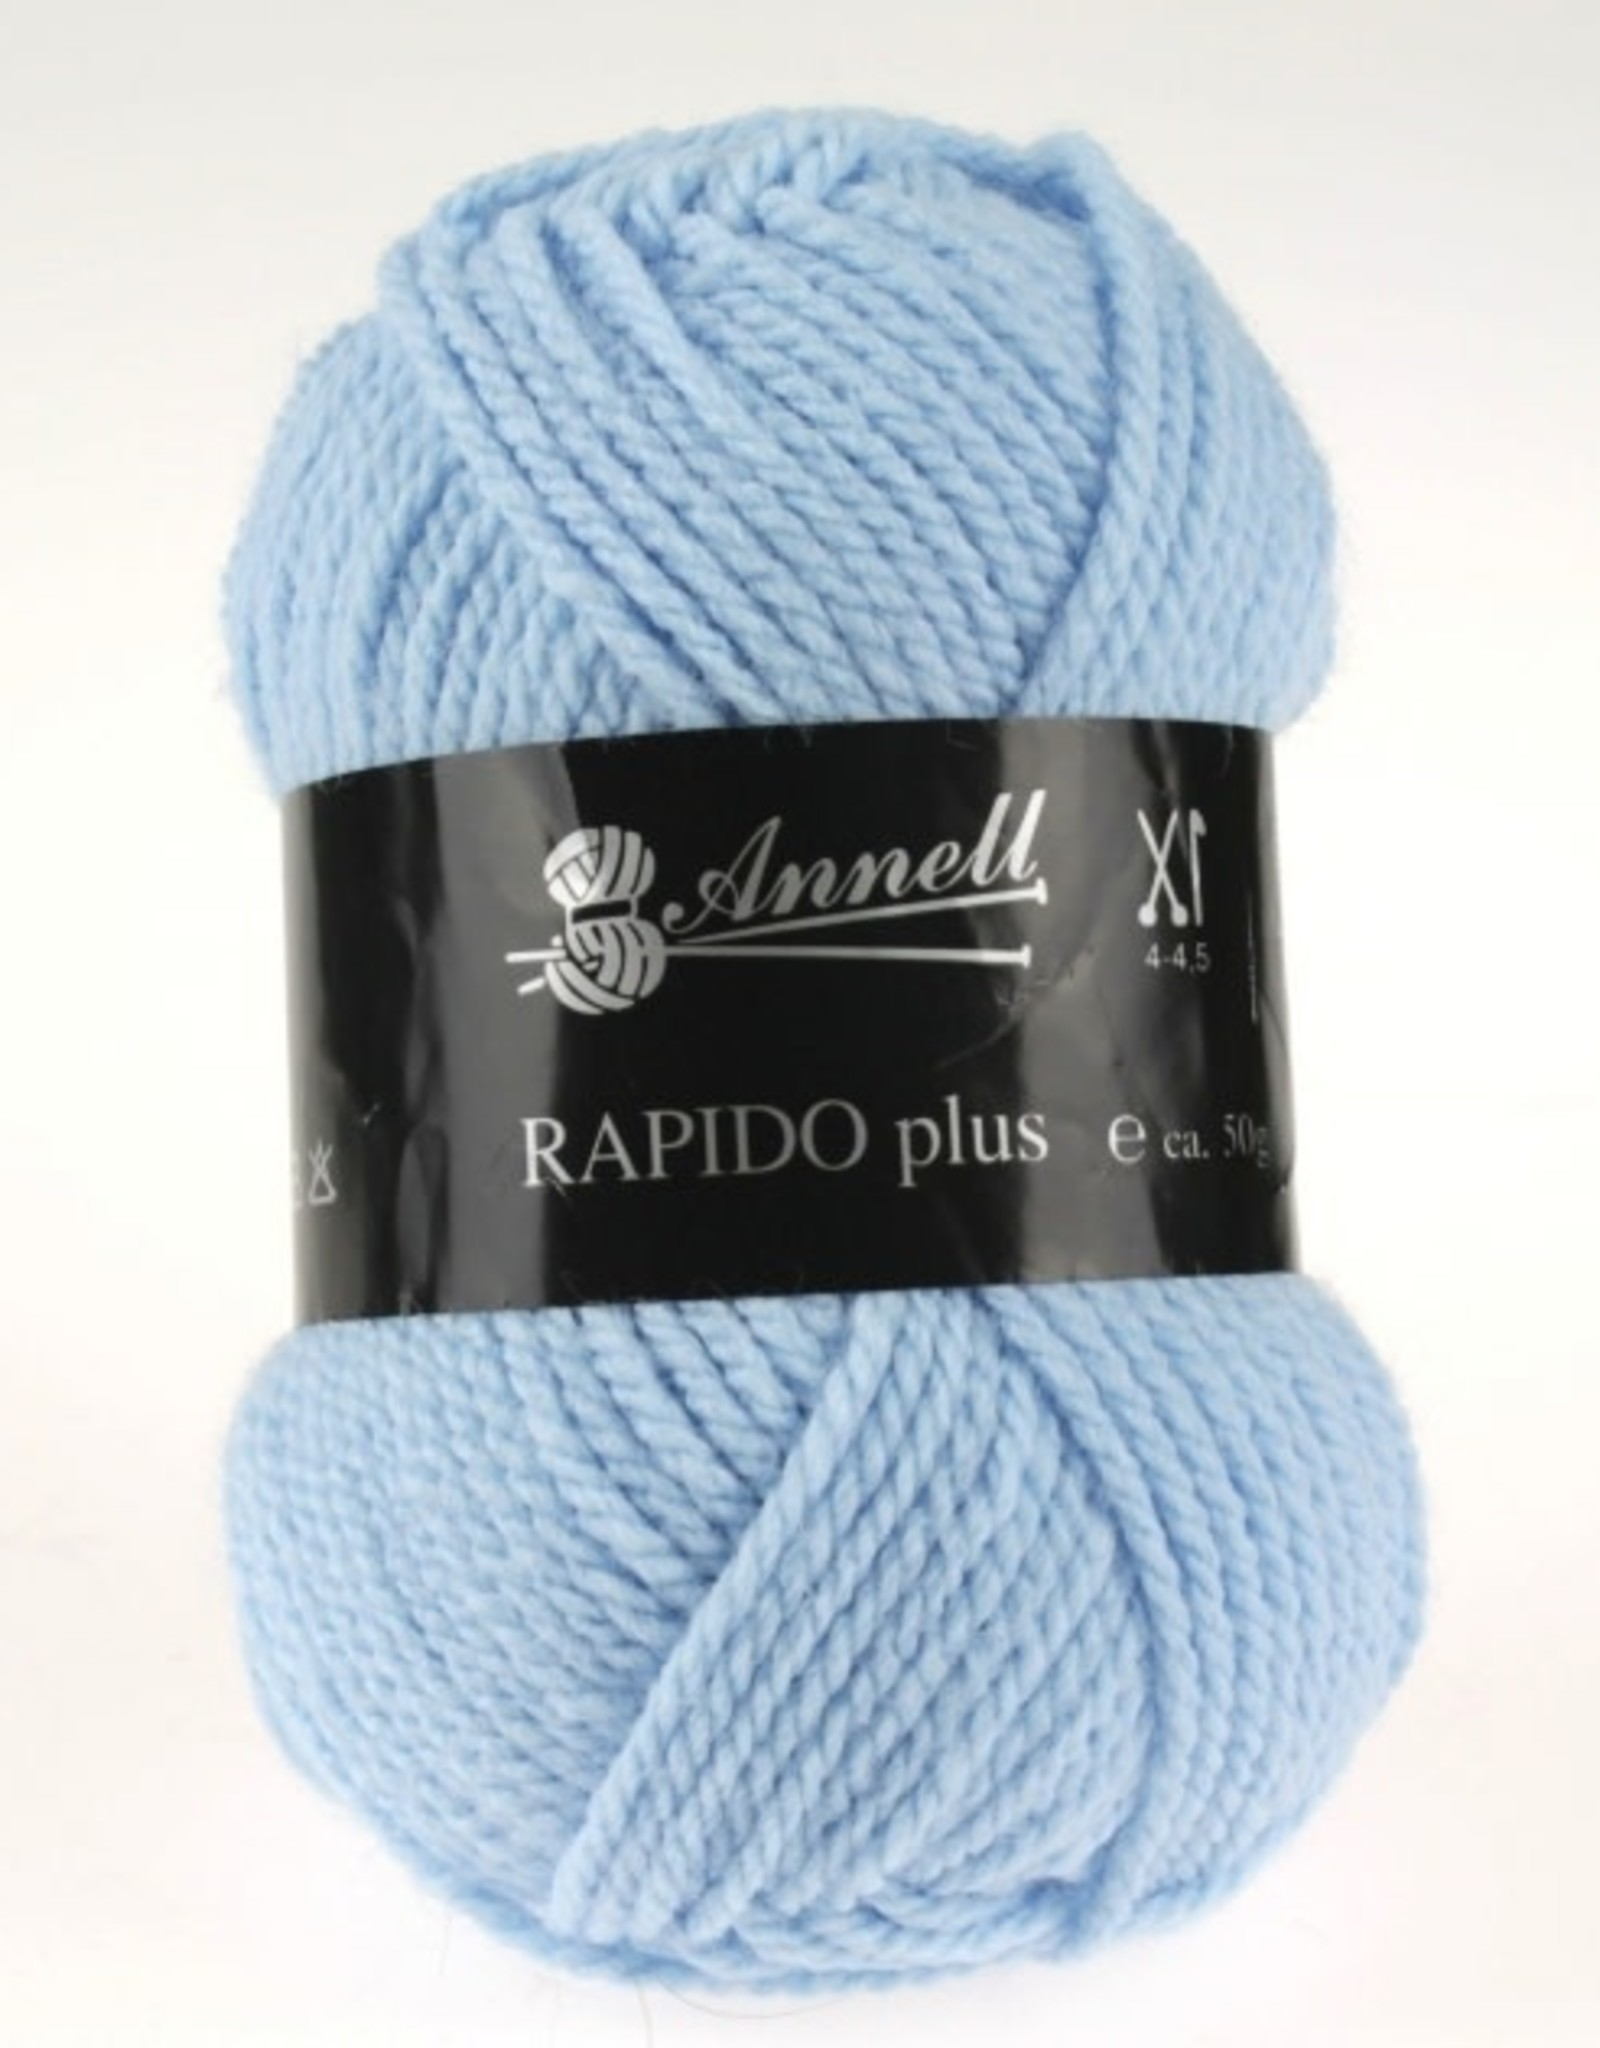 Annell Annell rapido plus 9242